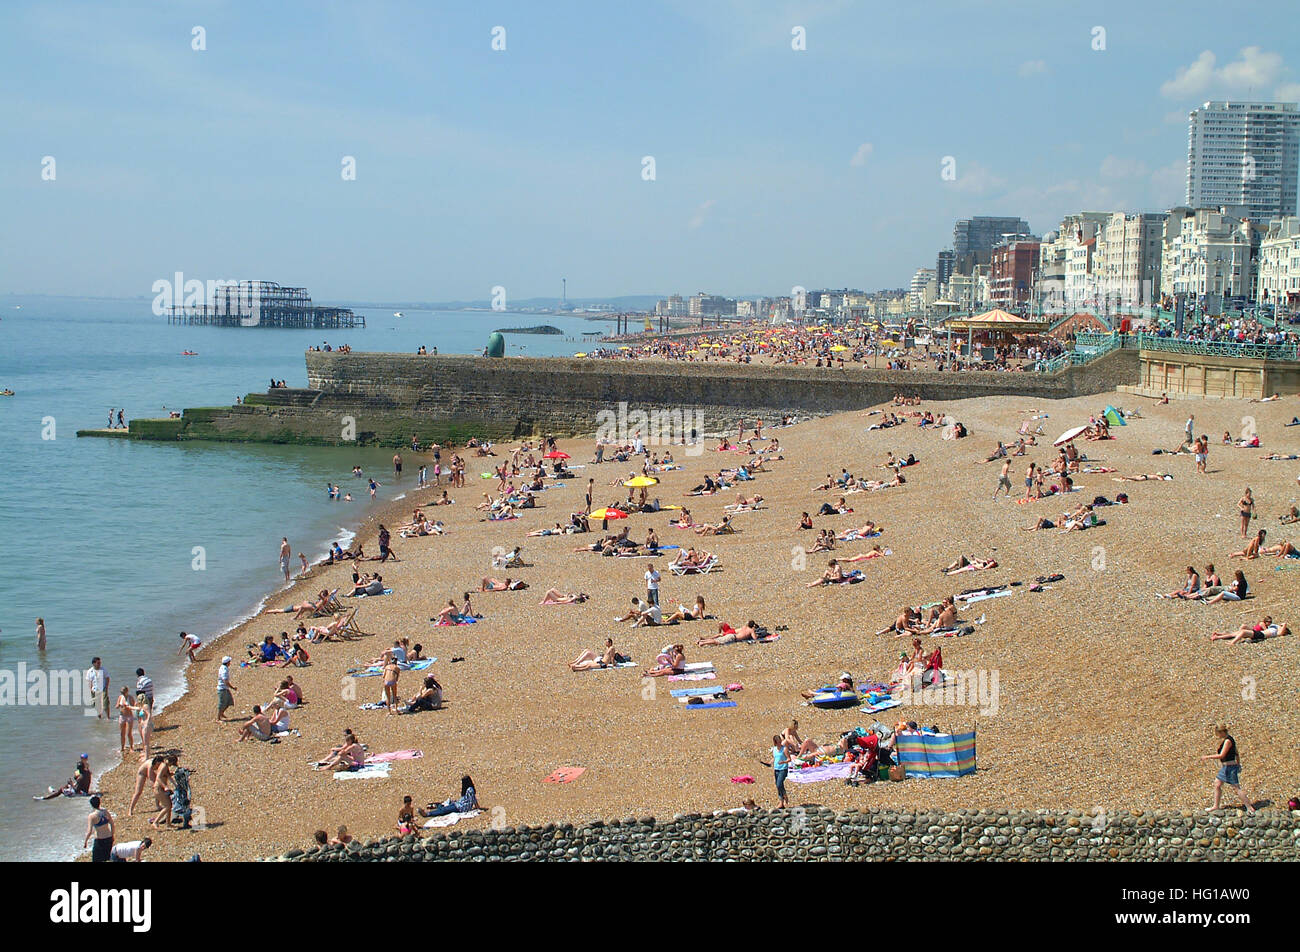 People on Brighton beach between sea defense groynes and the ruins of Old West pier in the background, Sussex, England. Stock Photo